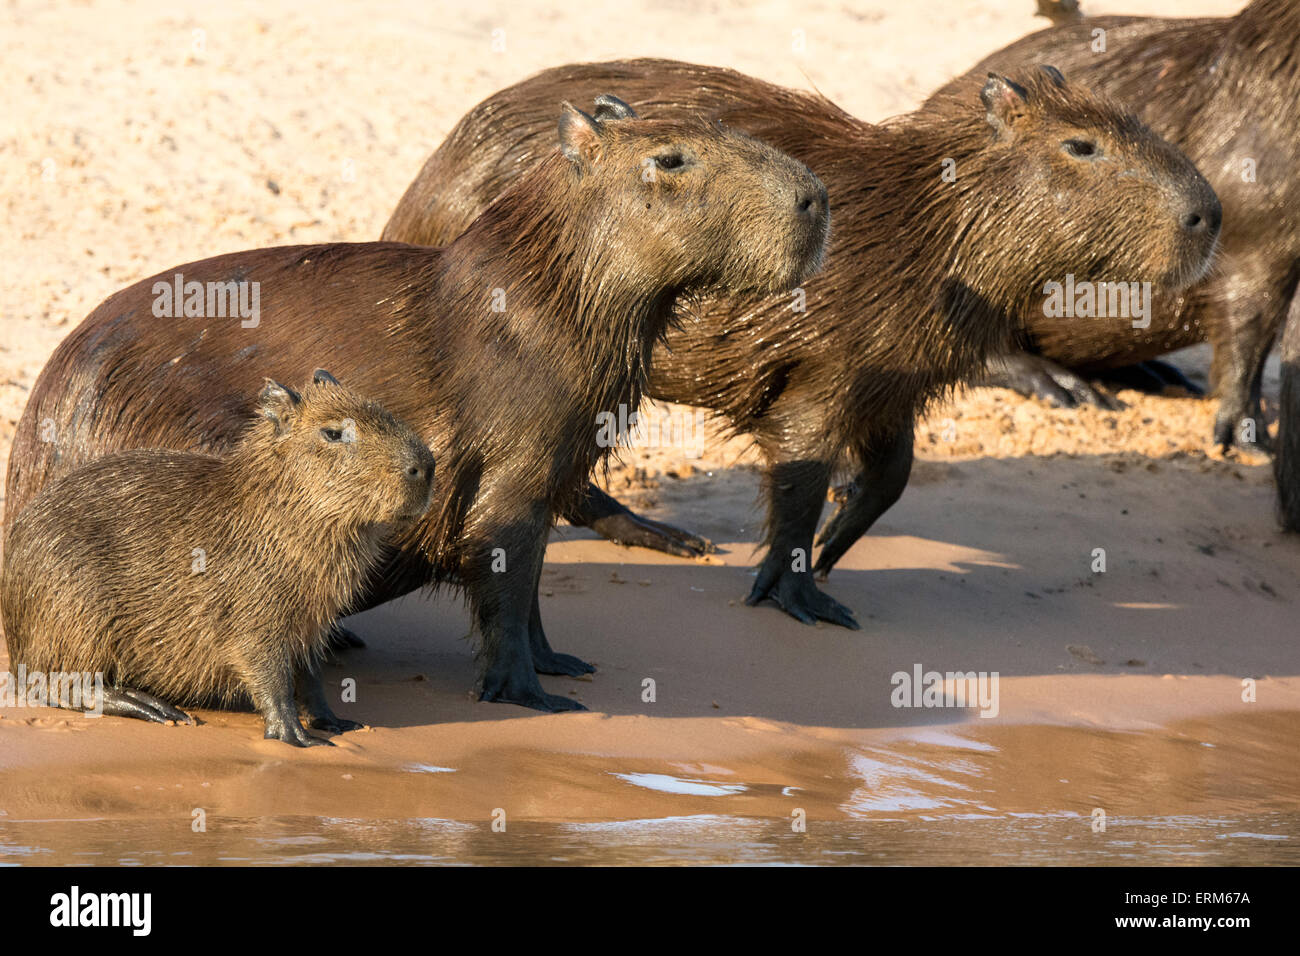 Family of wild Capybaras, Hydrochaeris hydrochaeris, on the bank of a river in the Pantanal, Brazil, South America Stock Photo